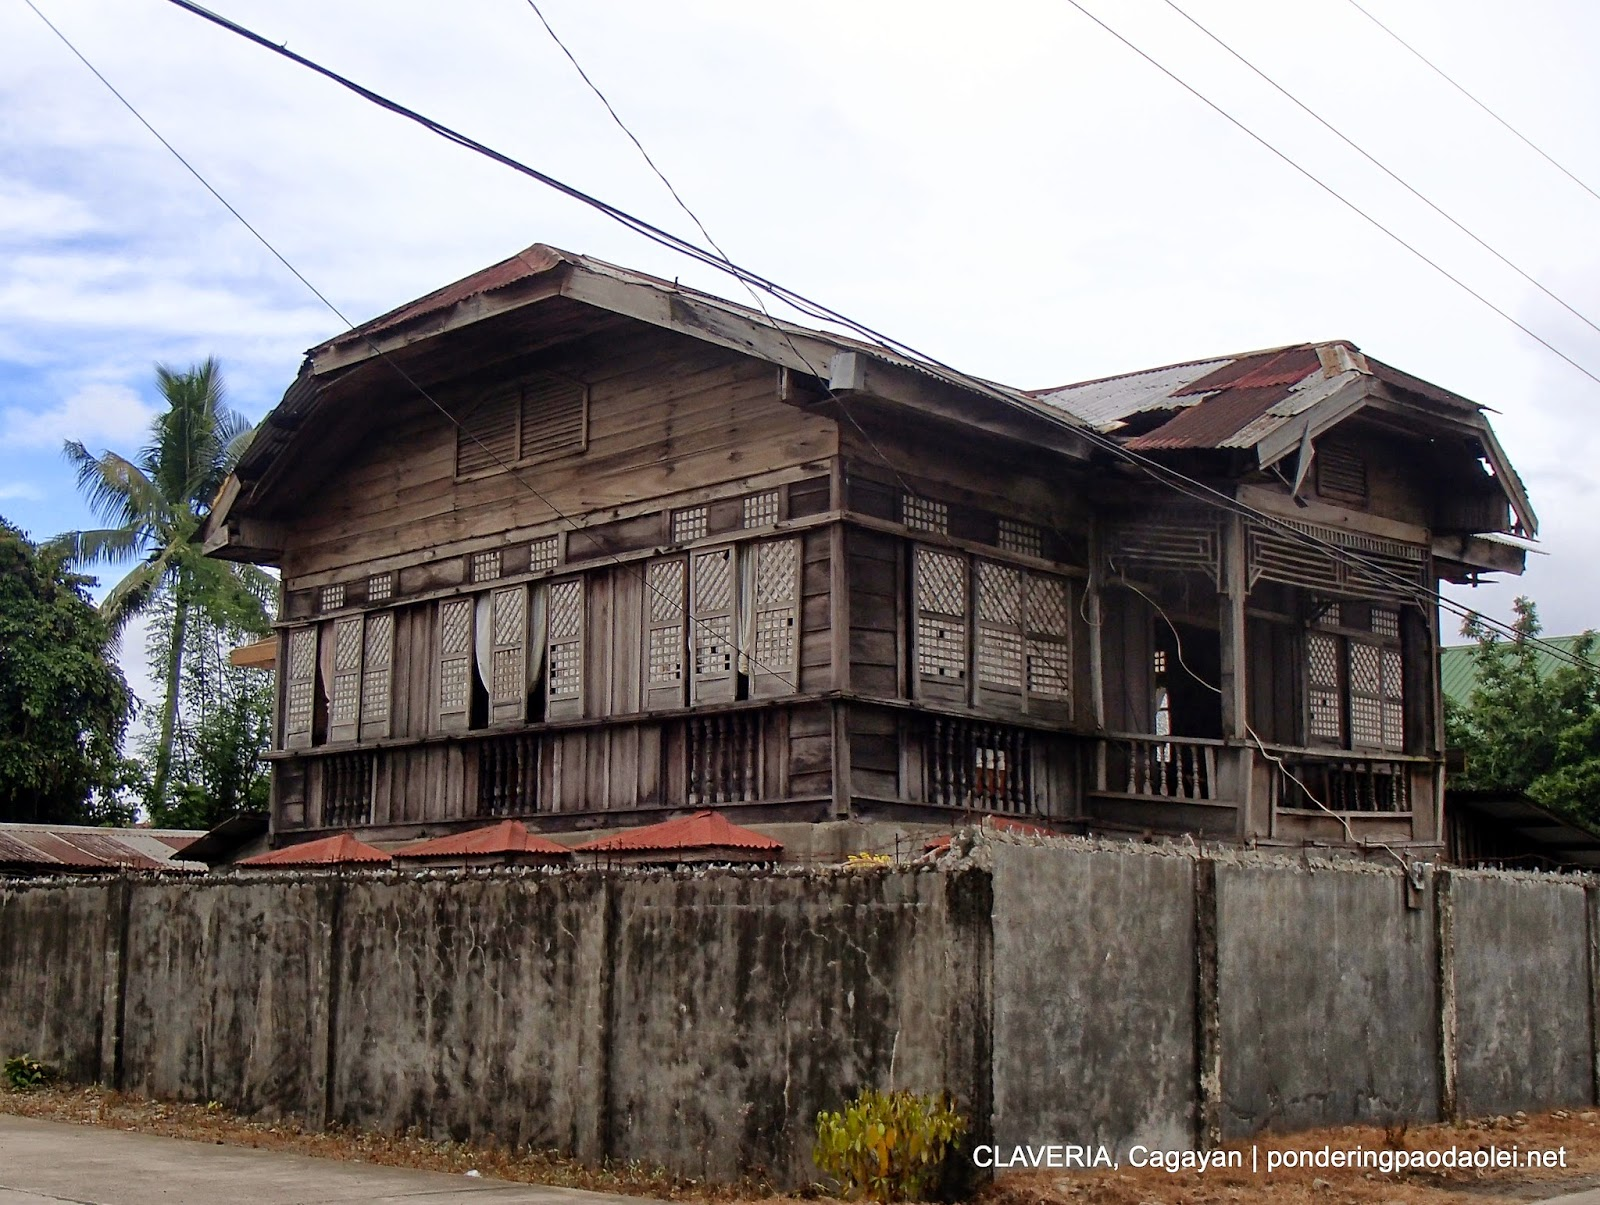 Claveria's Remaining Ancestral Homes